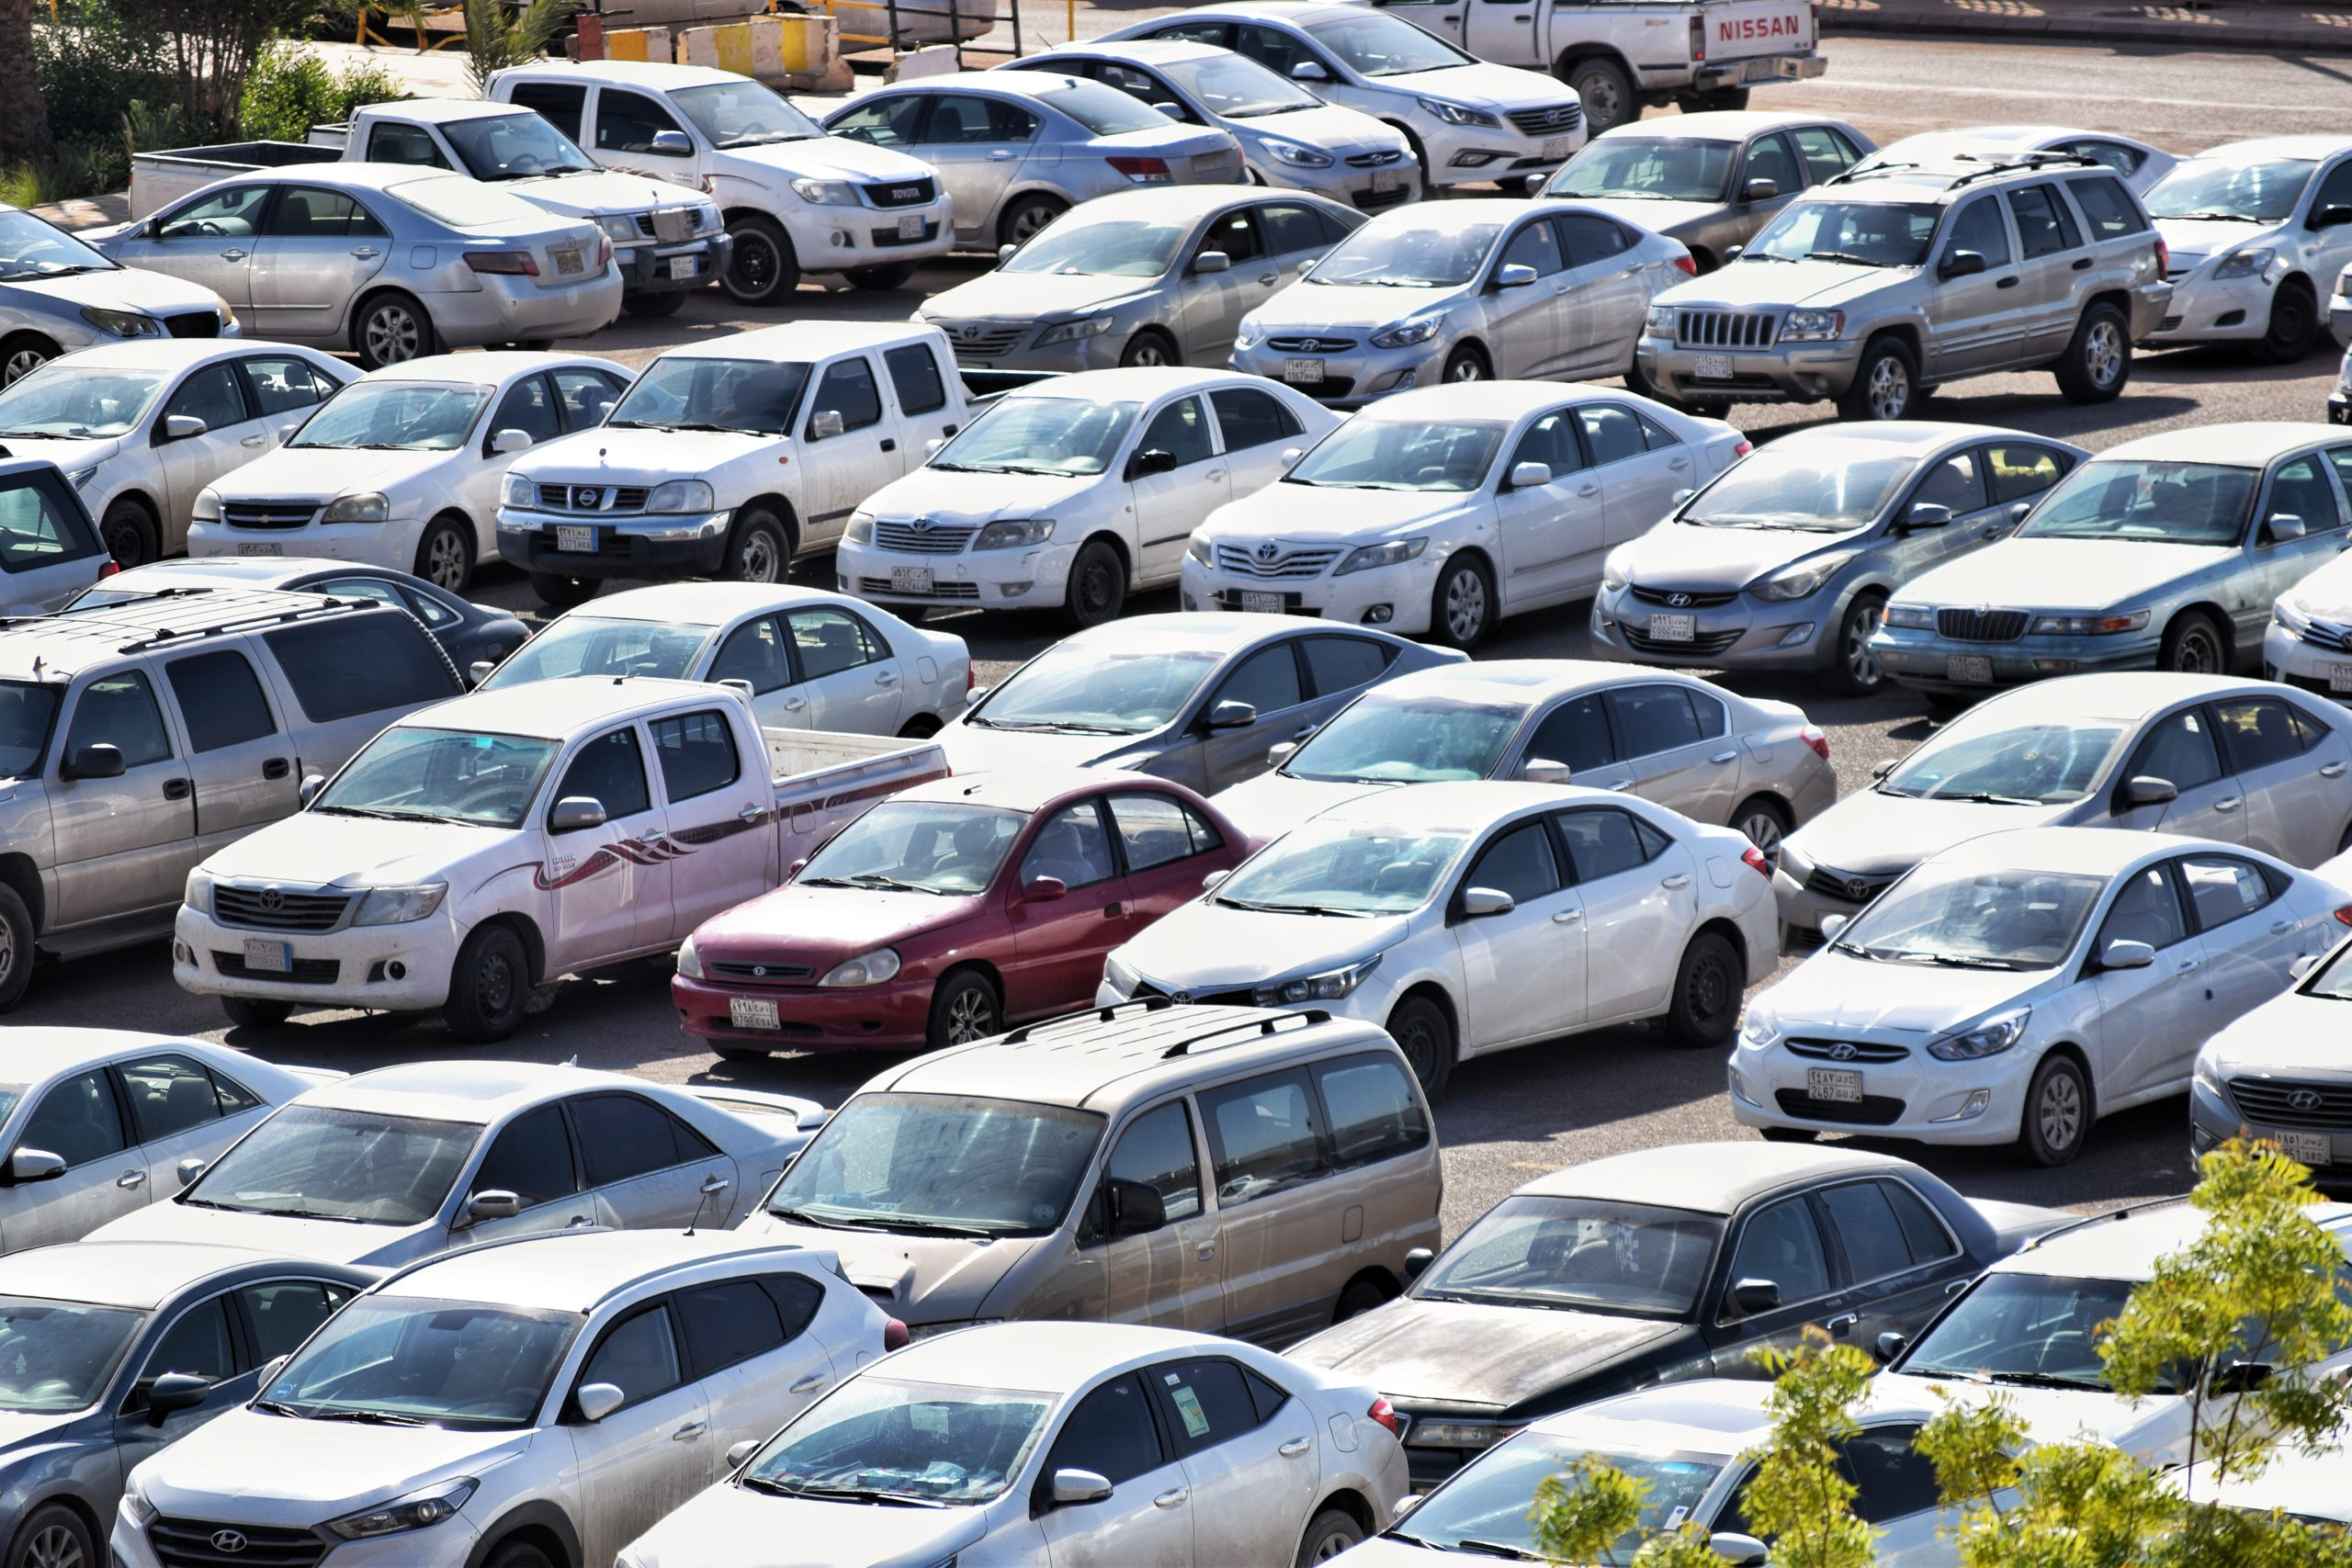 Parking Mess in India